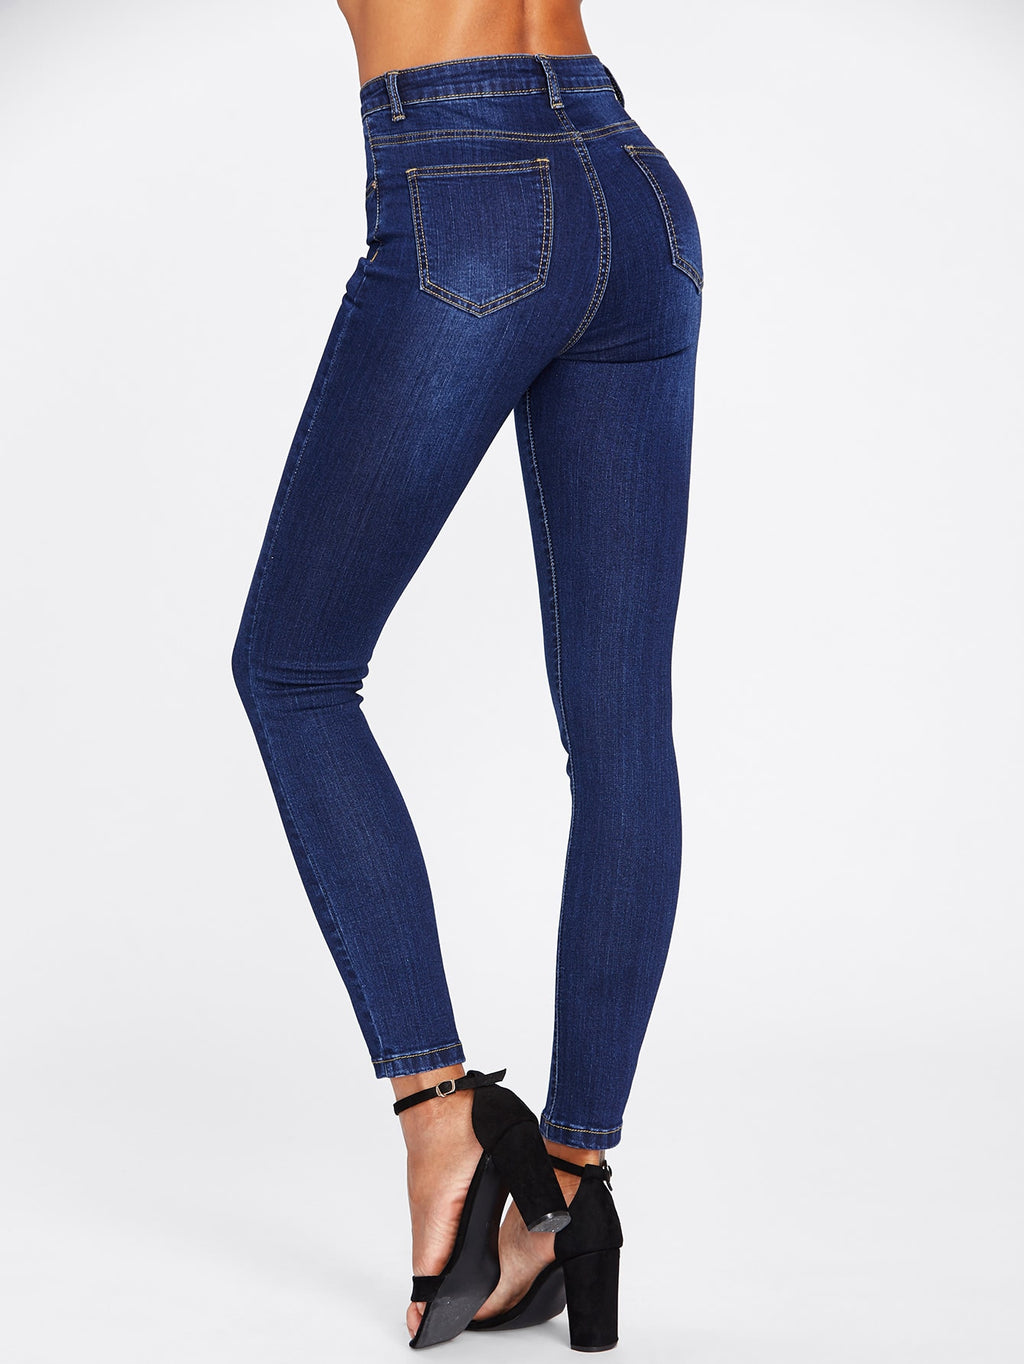 Dark Wash Skinny Jeans, really awesome!